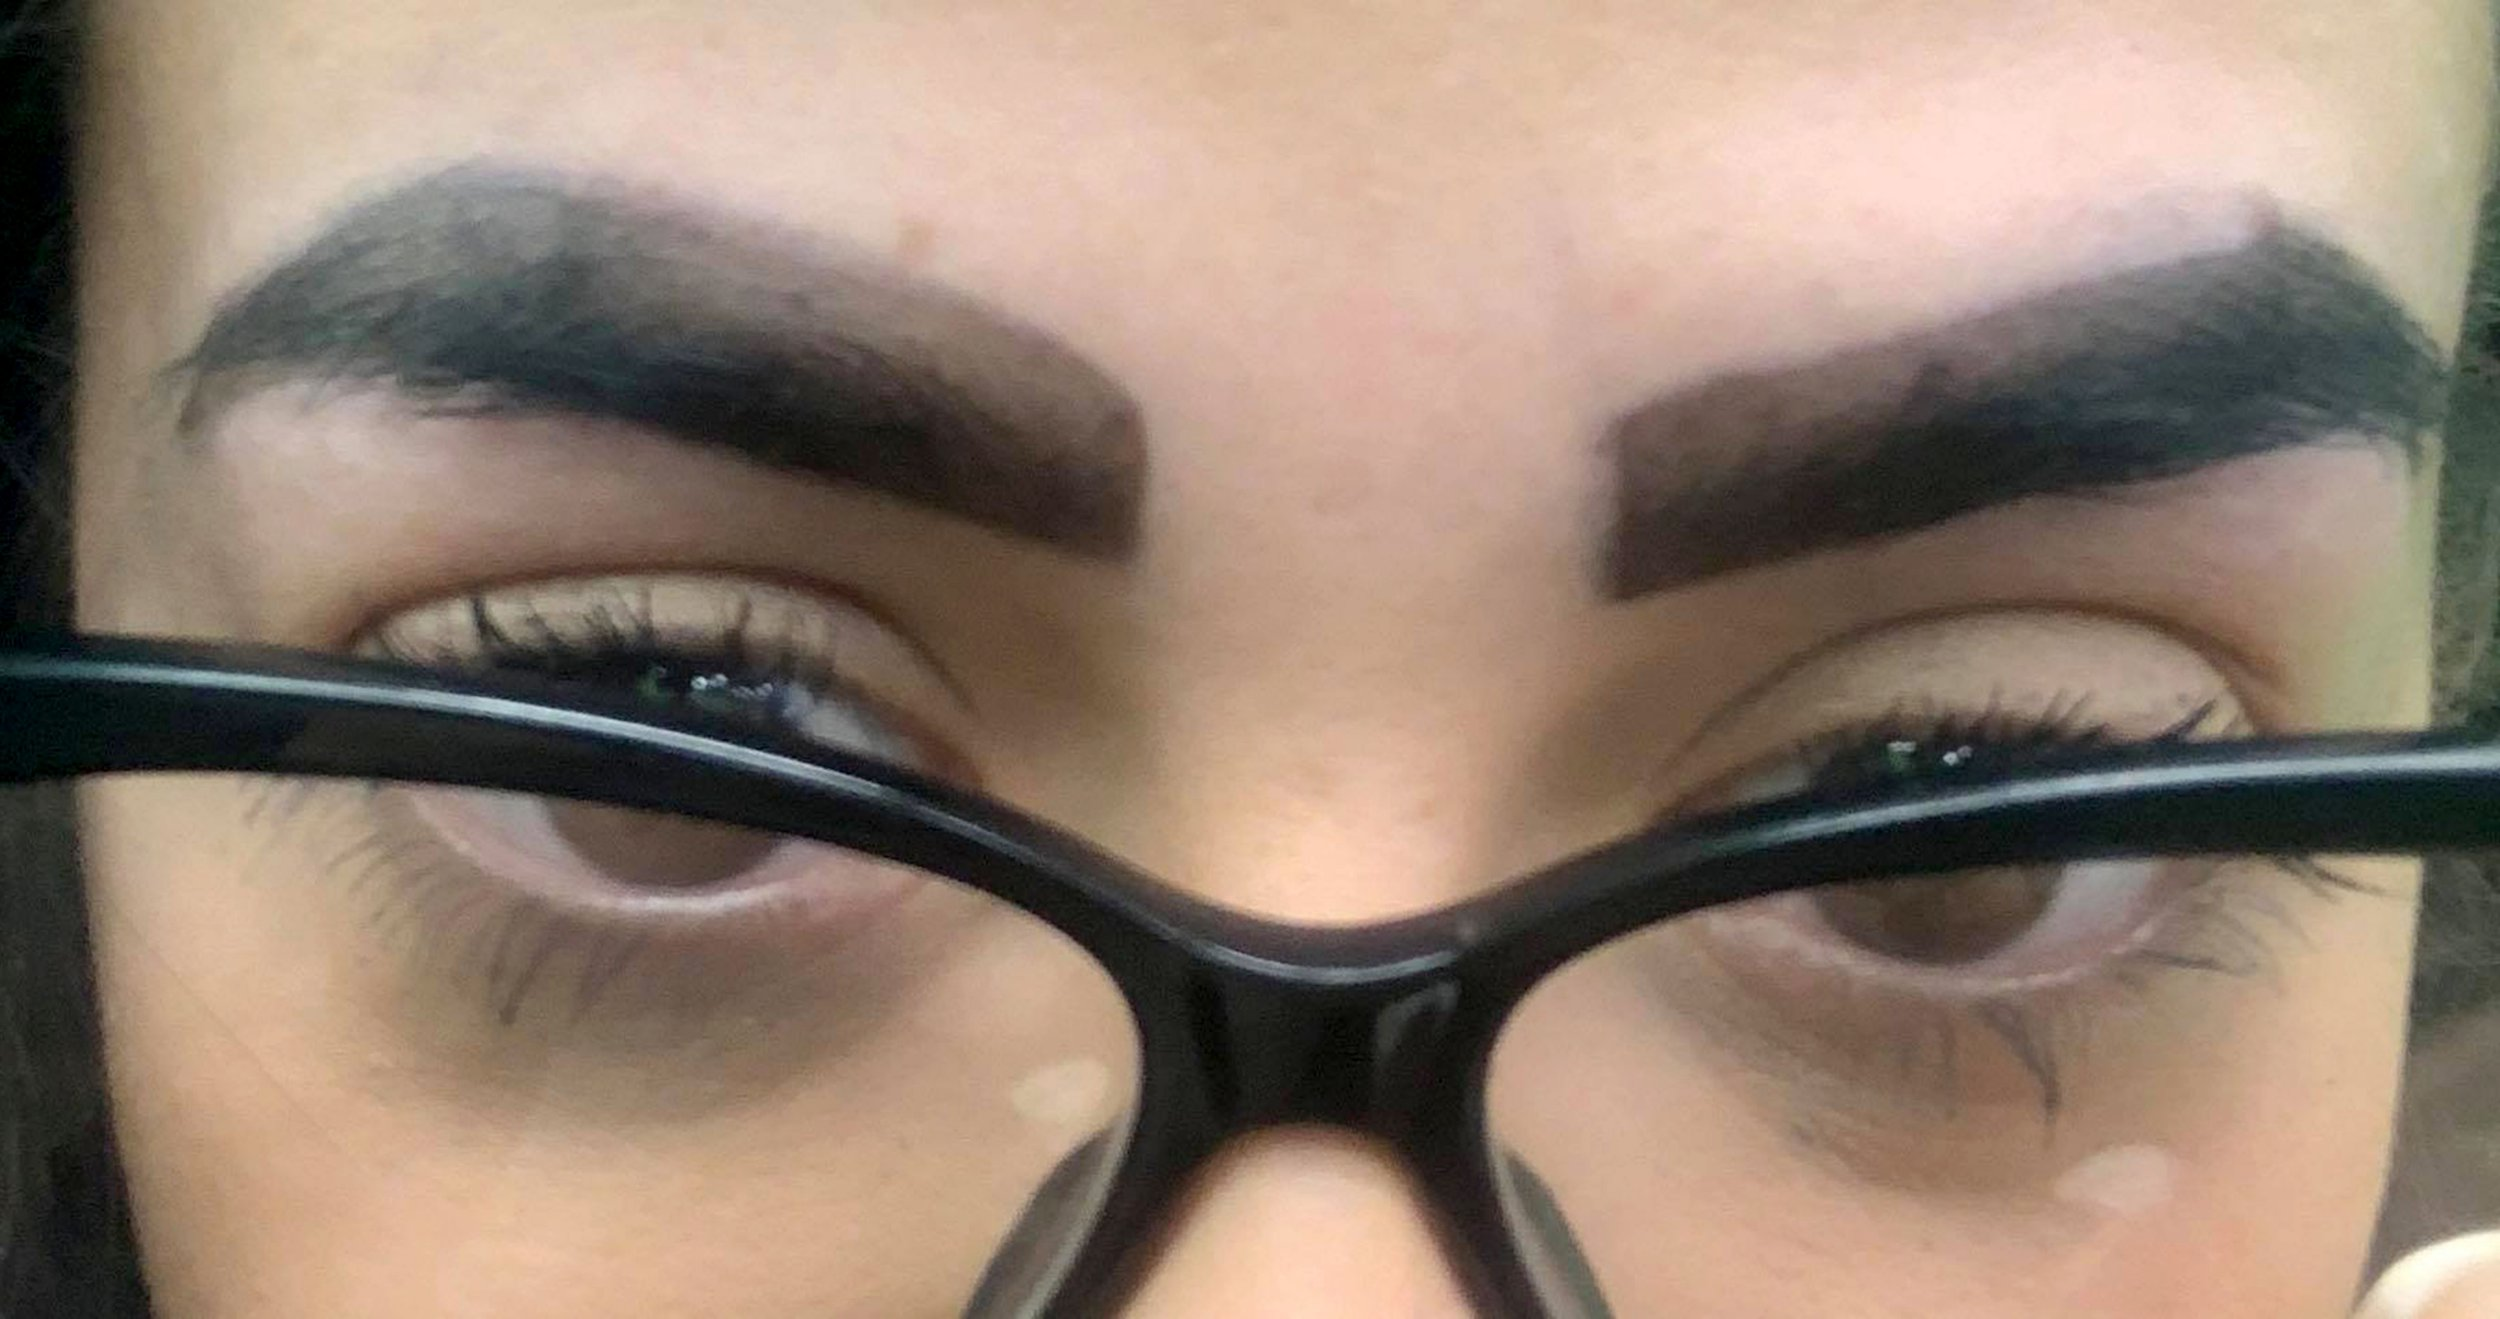 Woman left with eyebrows that look like 'they were drawn on with a marker pen' after salon wax and tint